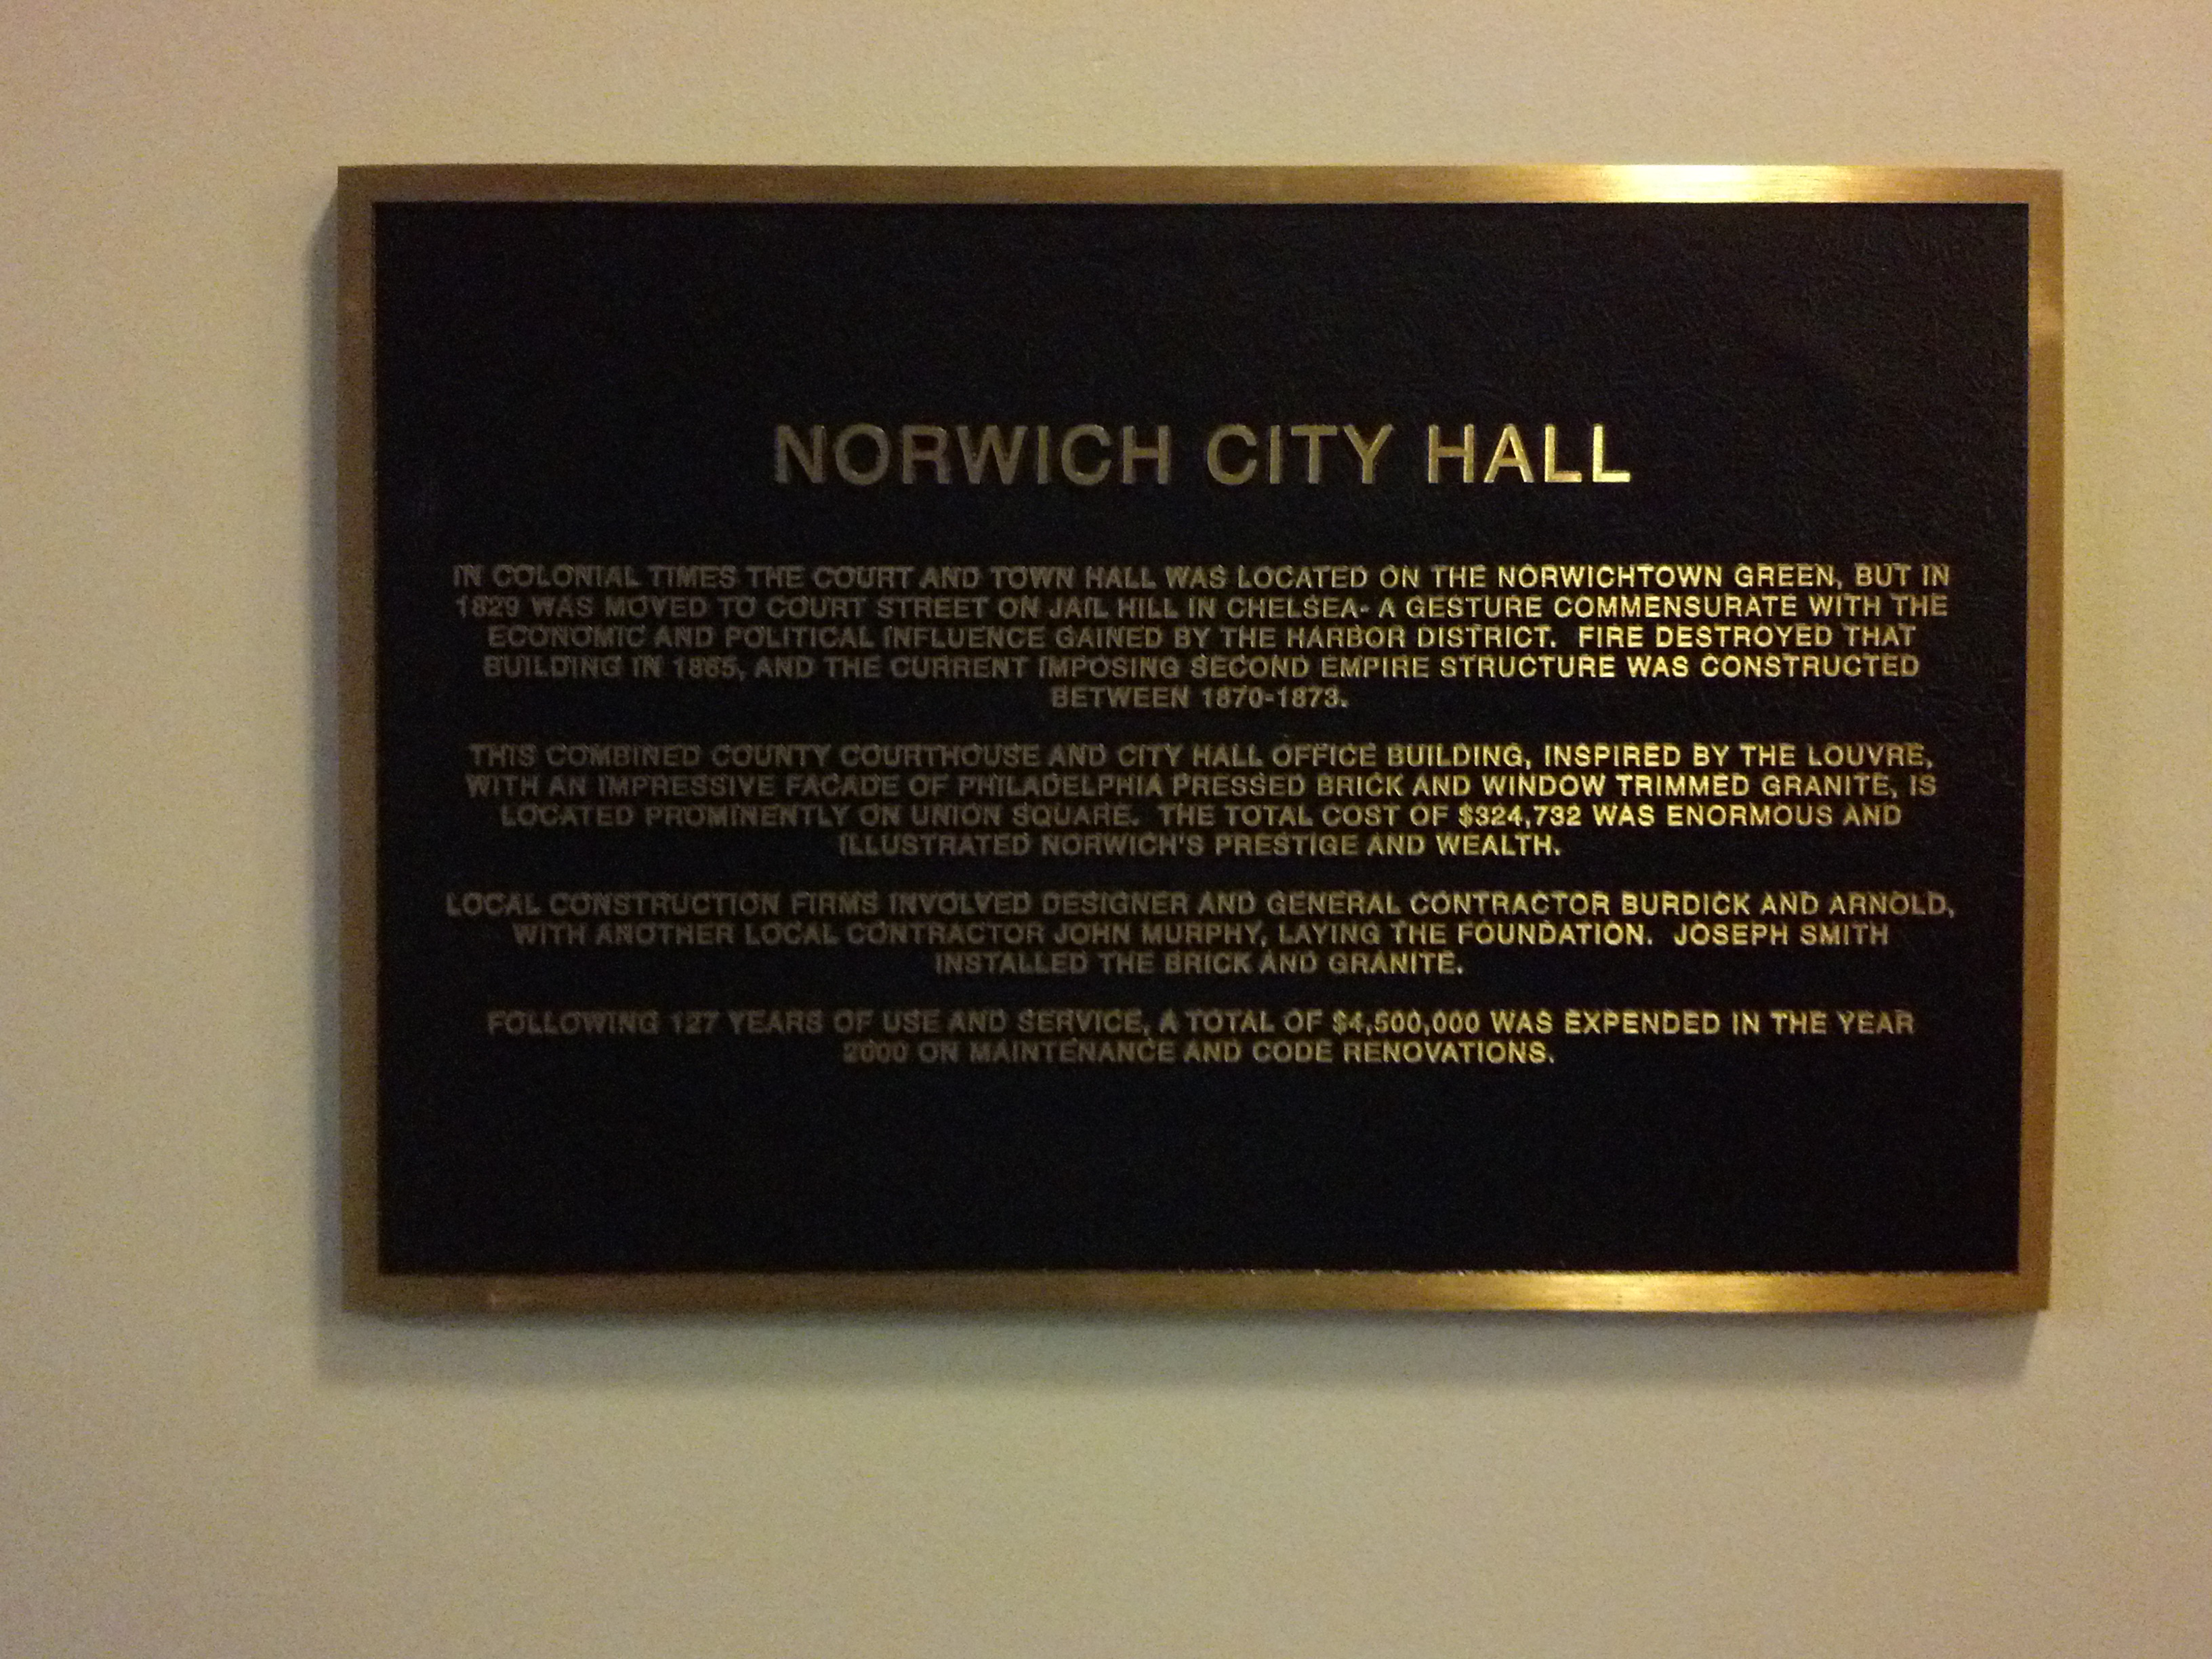 Plaque Describing History of City Hall